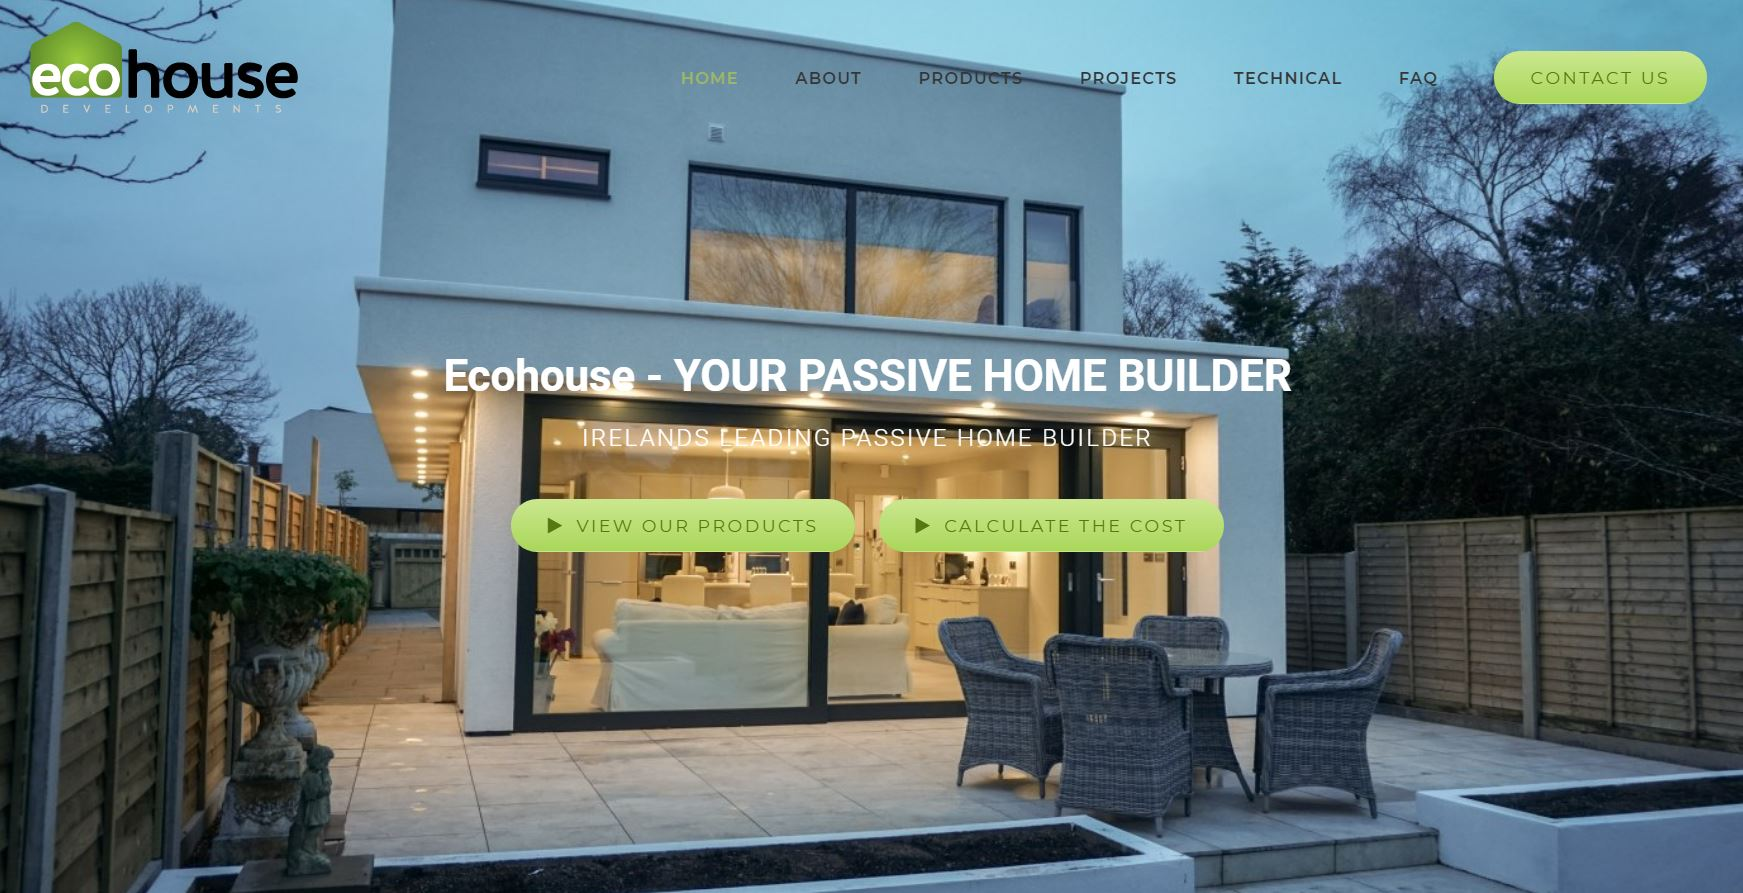 Ecohouse Website Build